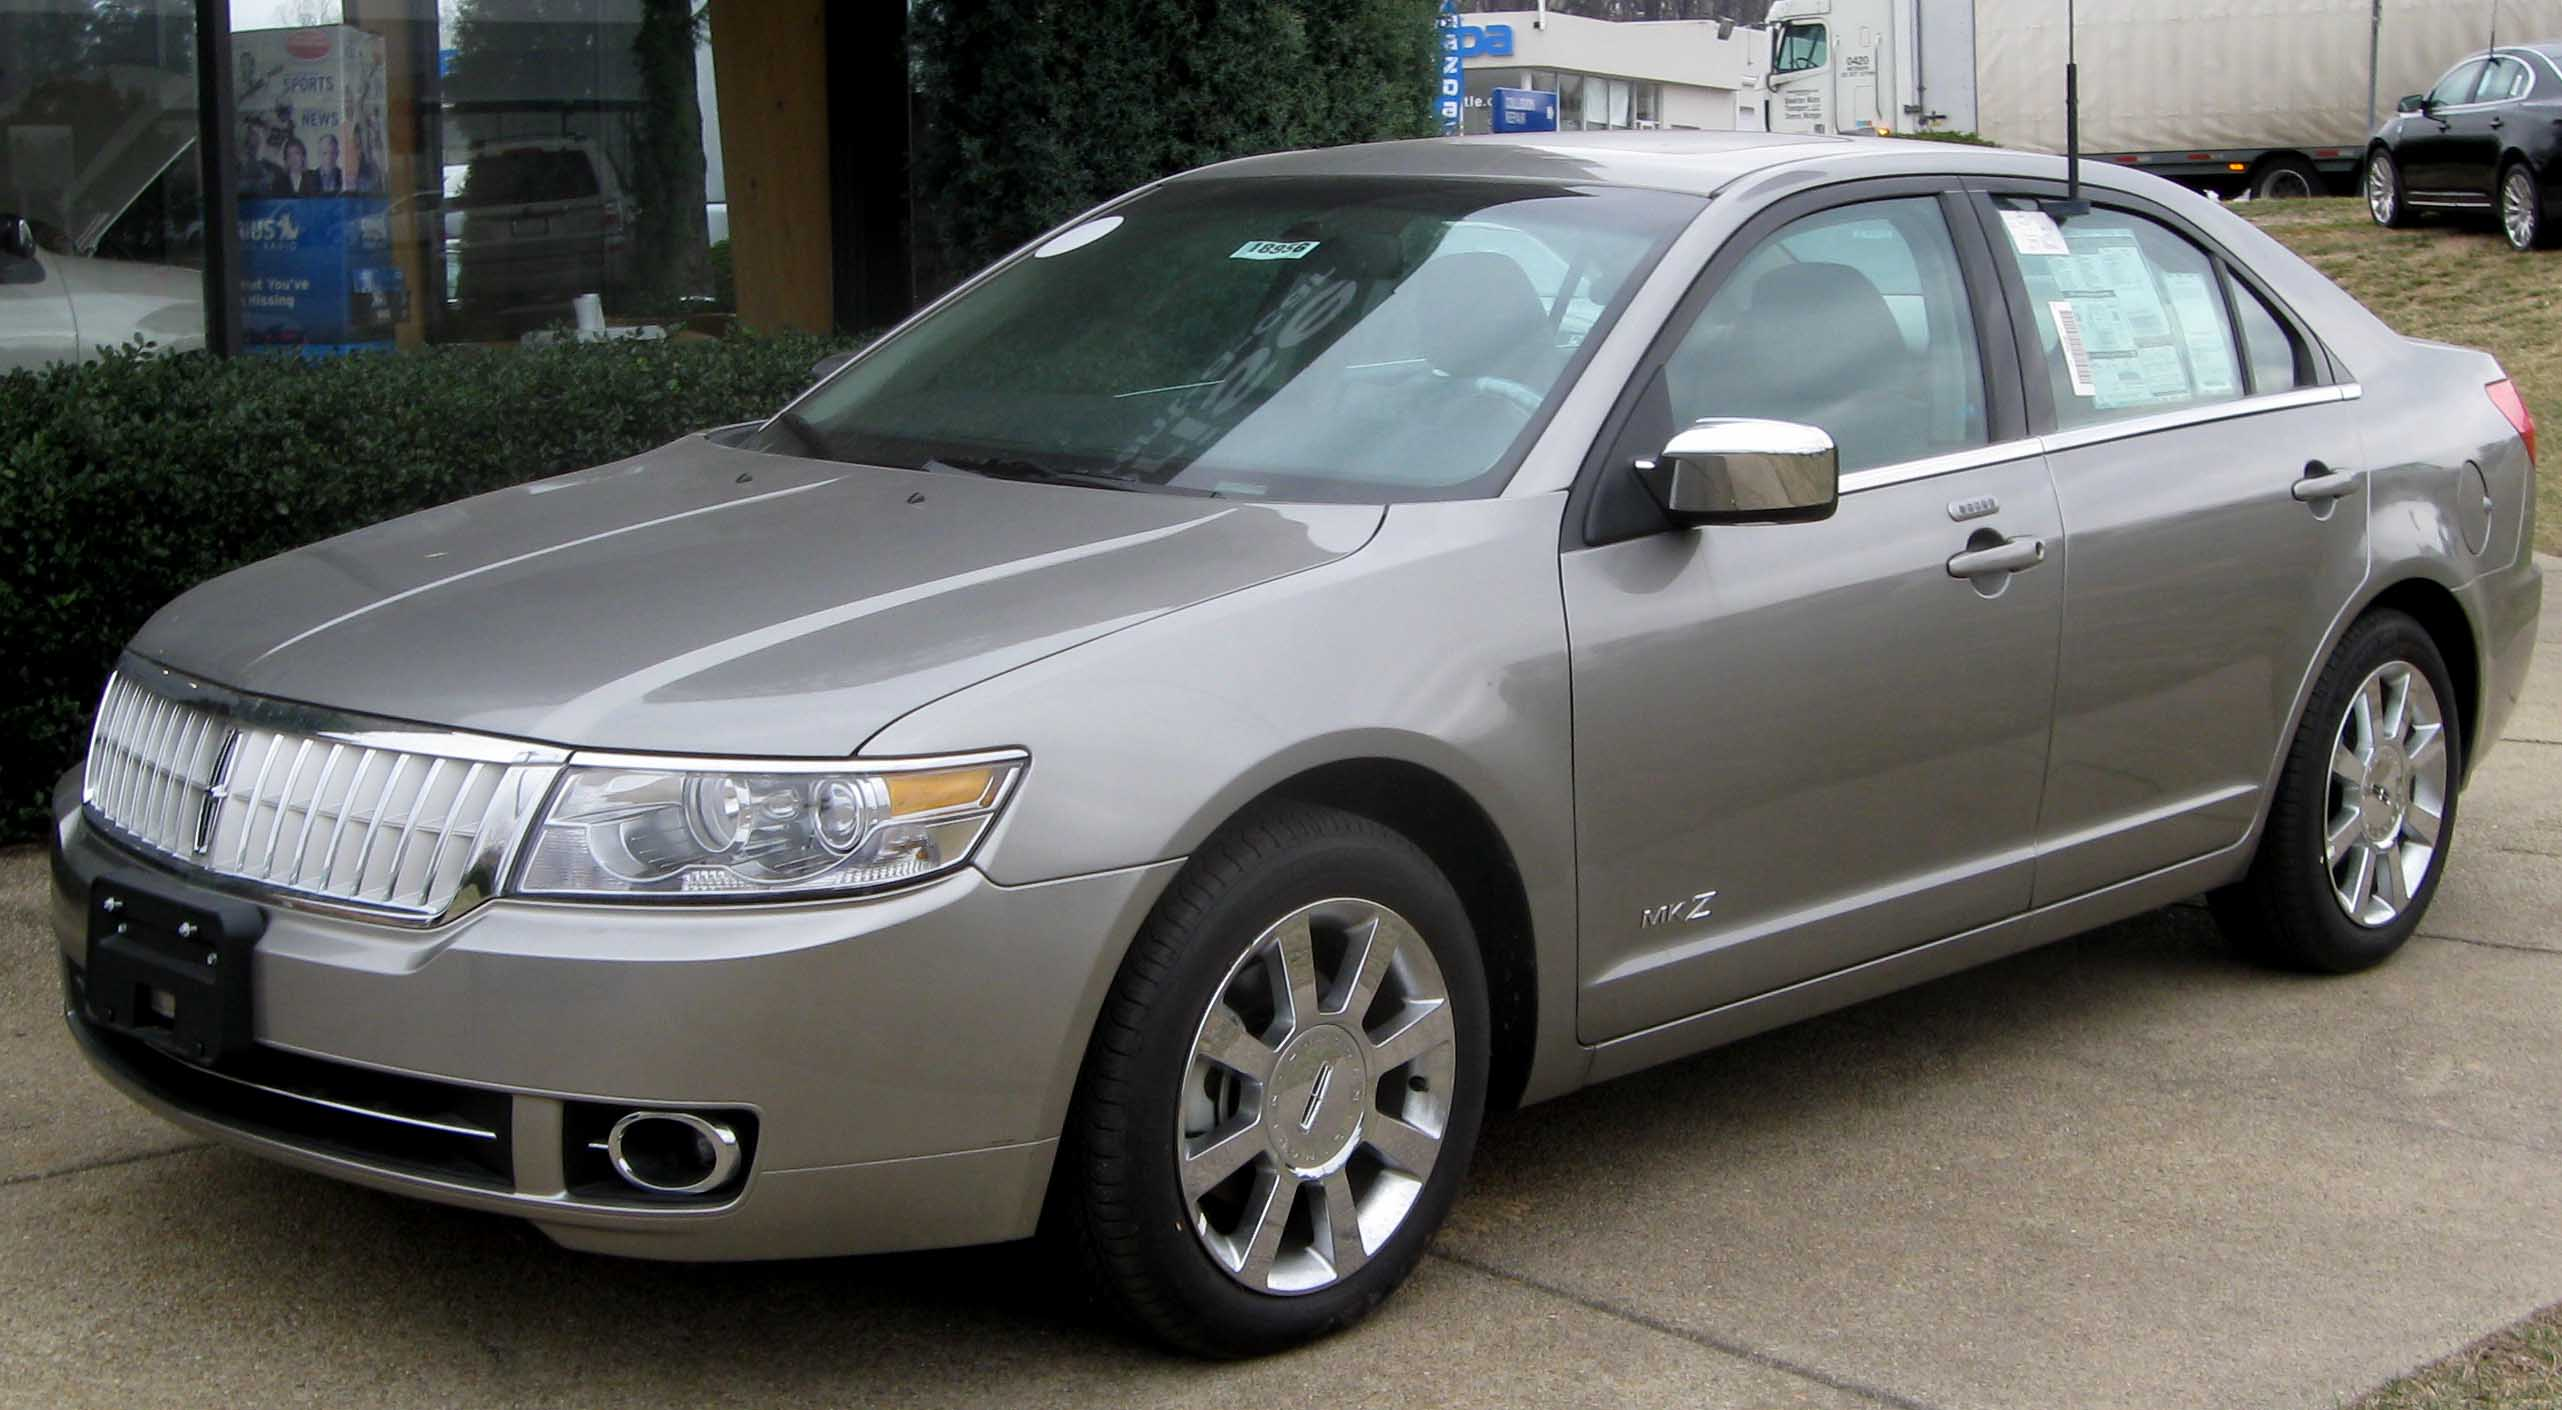 2008 Lincoln Mkz Information And Photos Momentcar